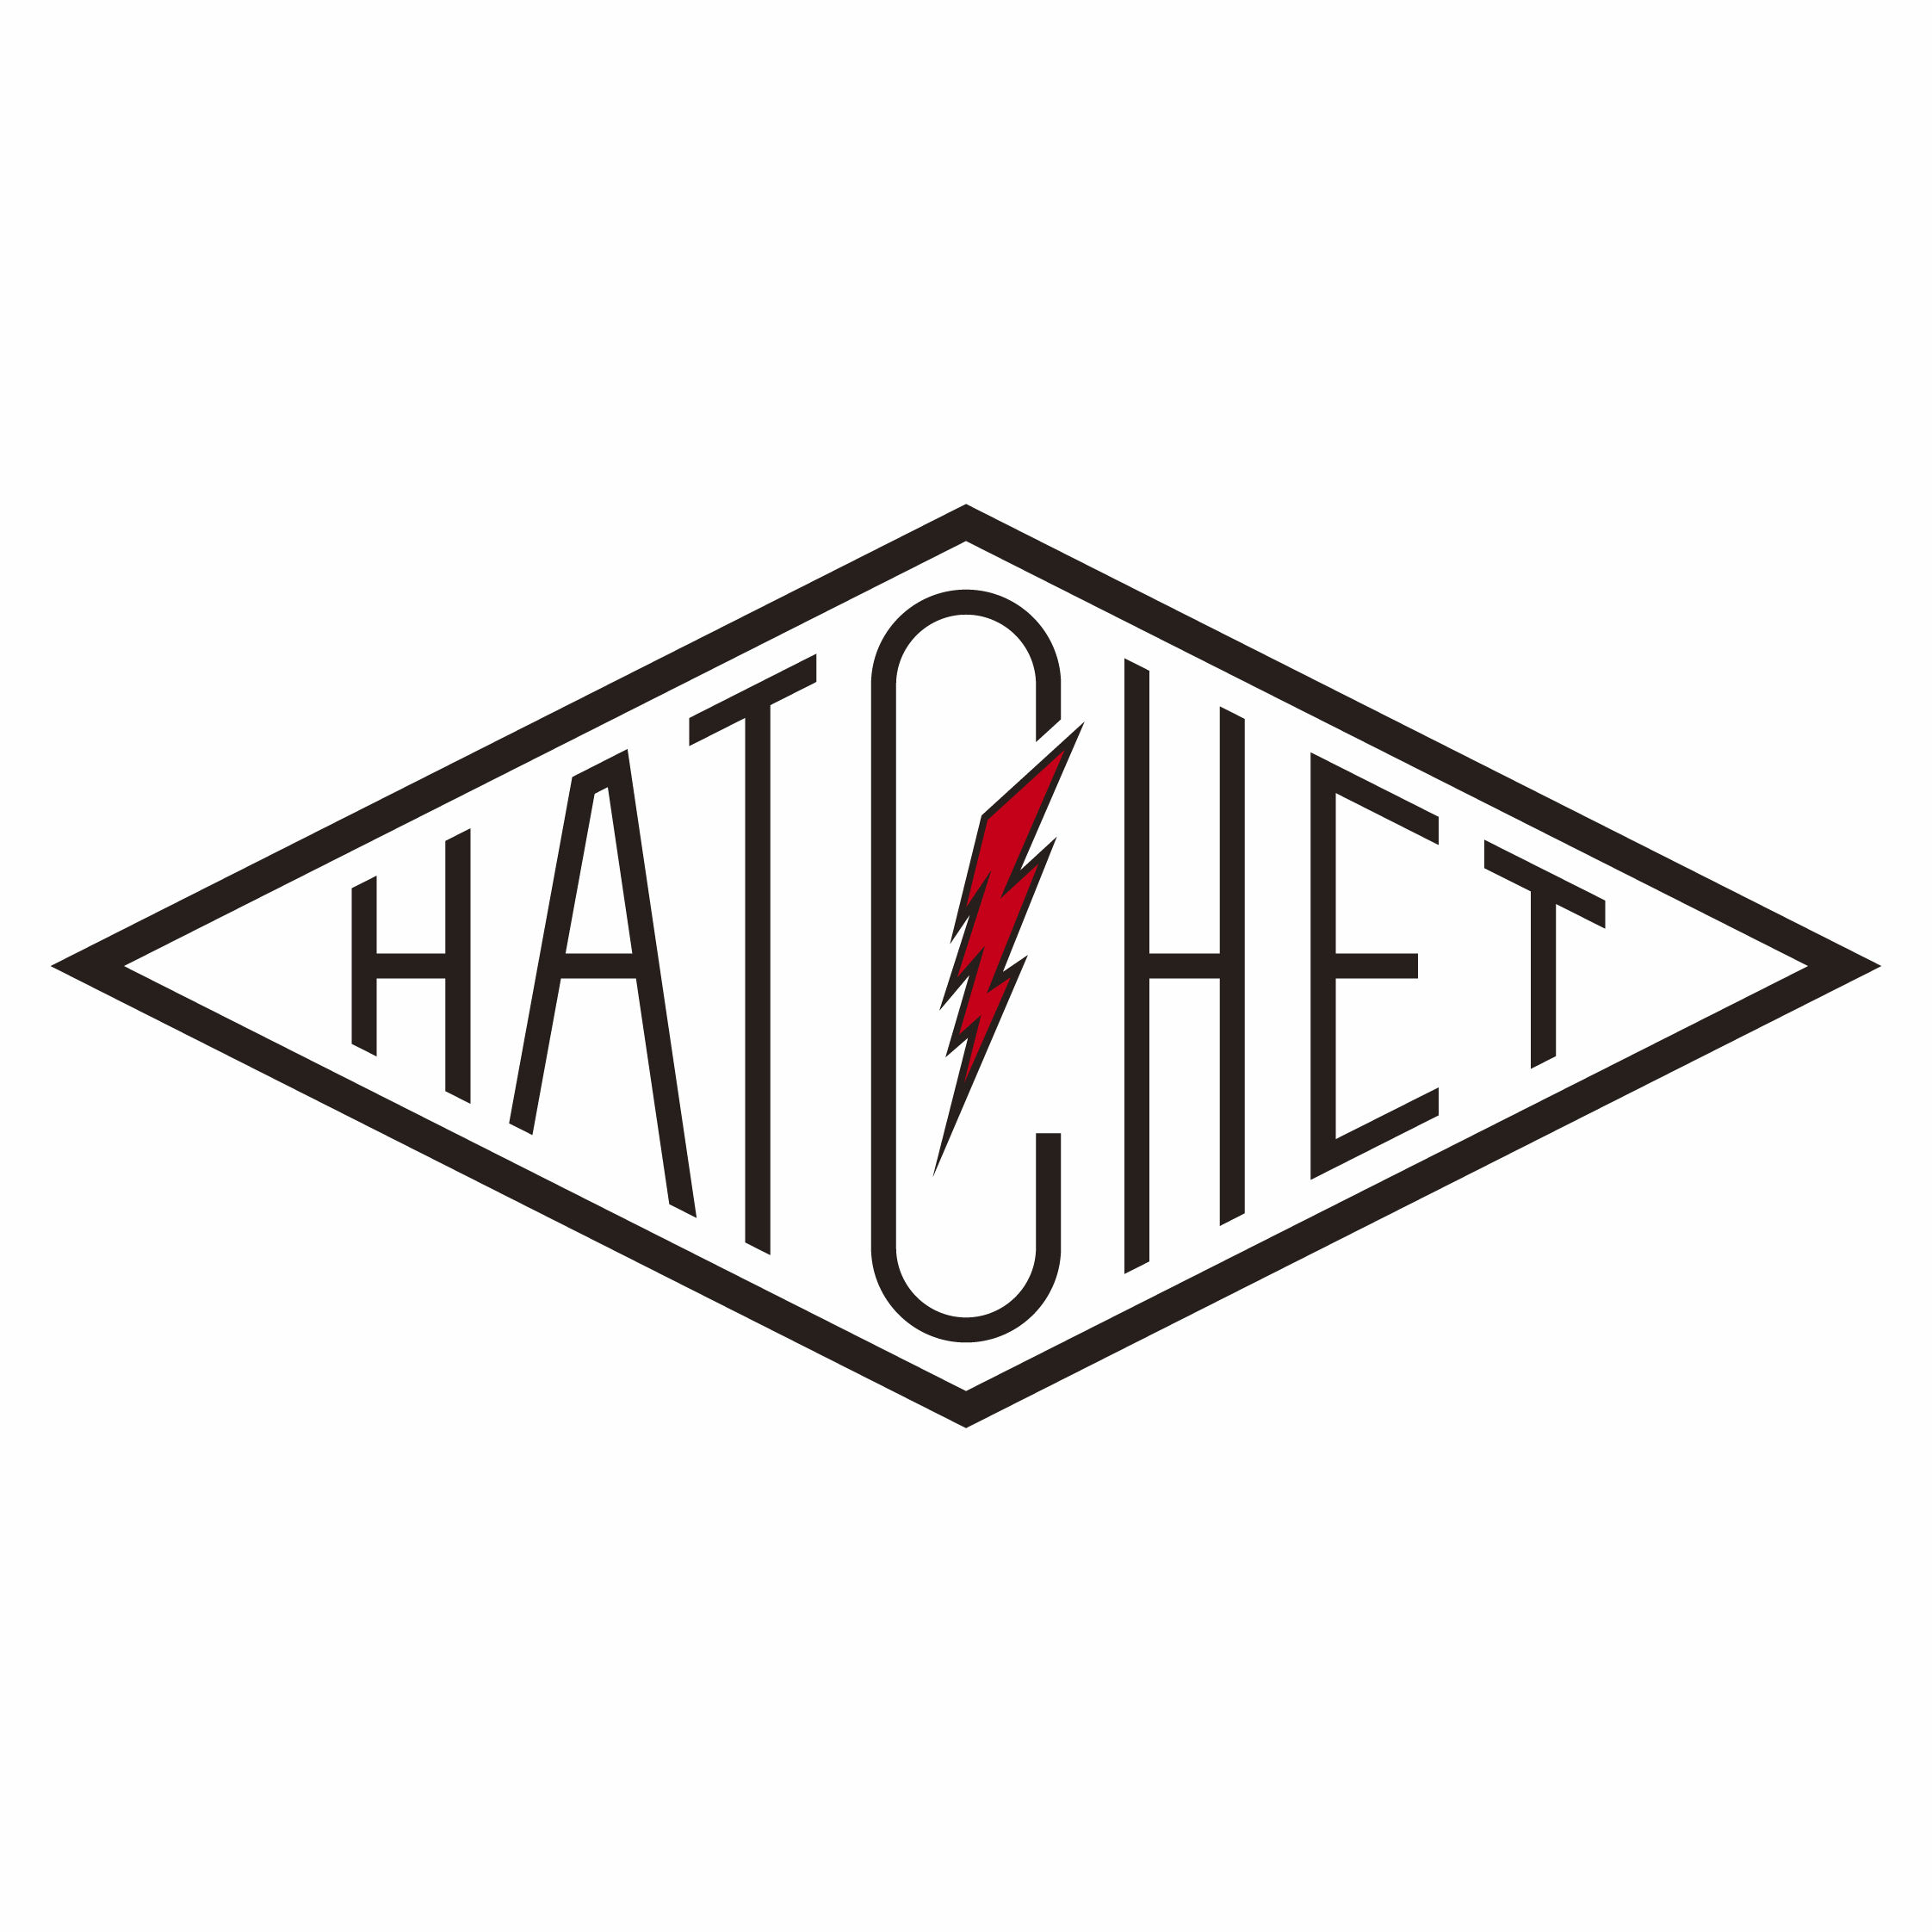 HATCHET                 METAL WORK STUDIO